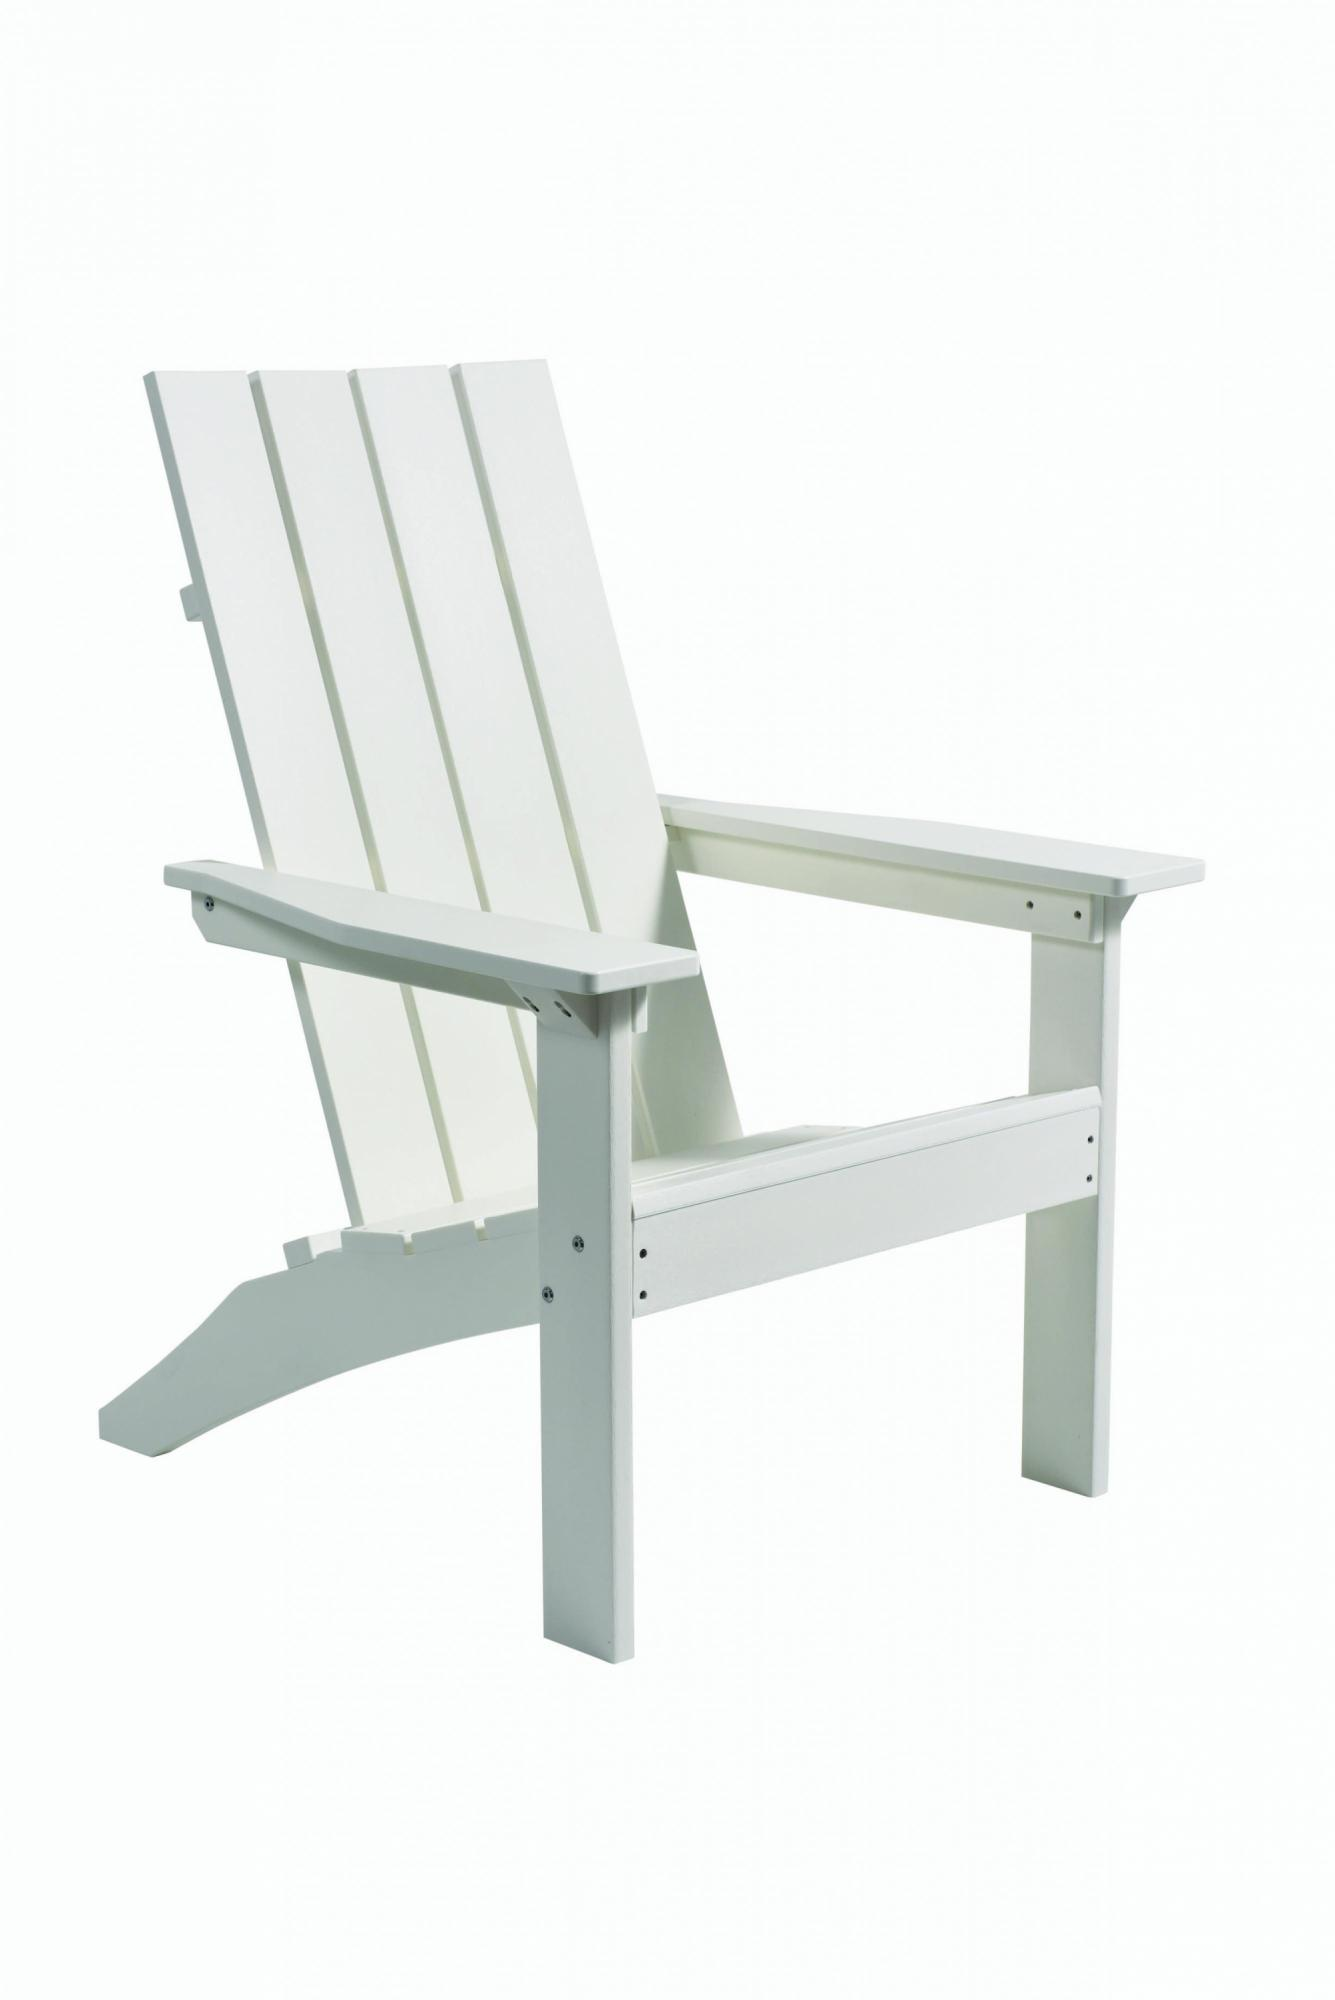 Mayhew Stationary Adirondack